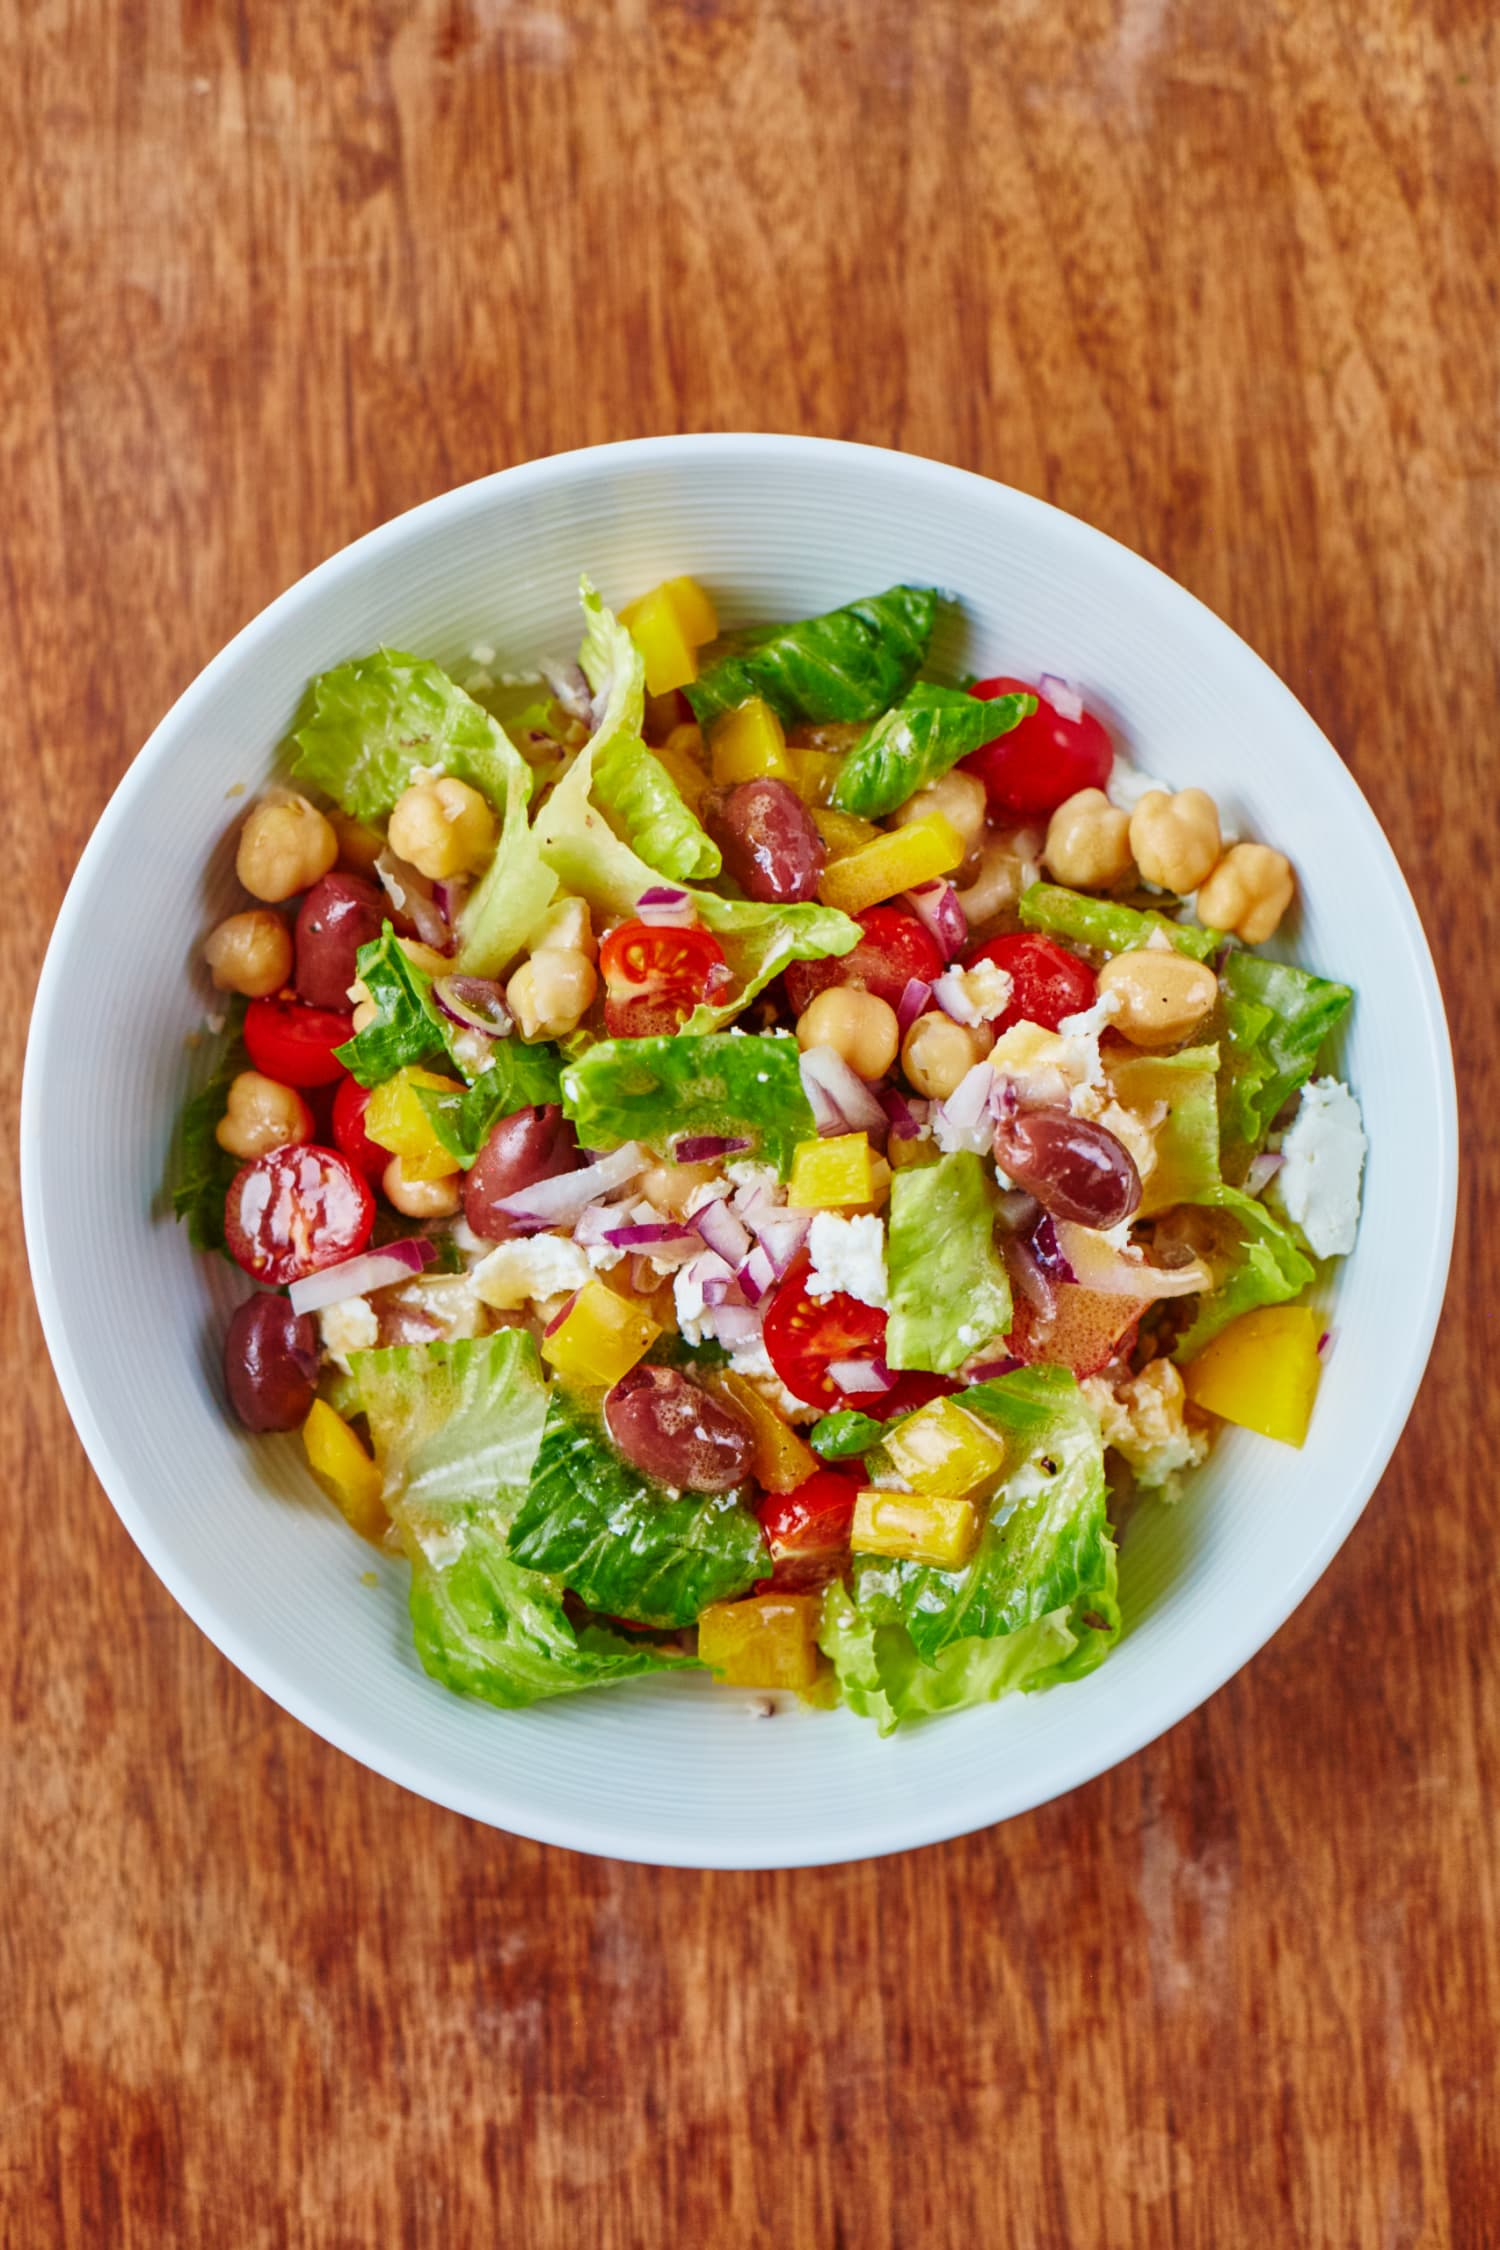 Recipe: Chopped Chickpea Salad